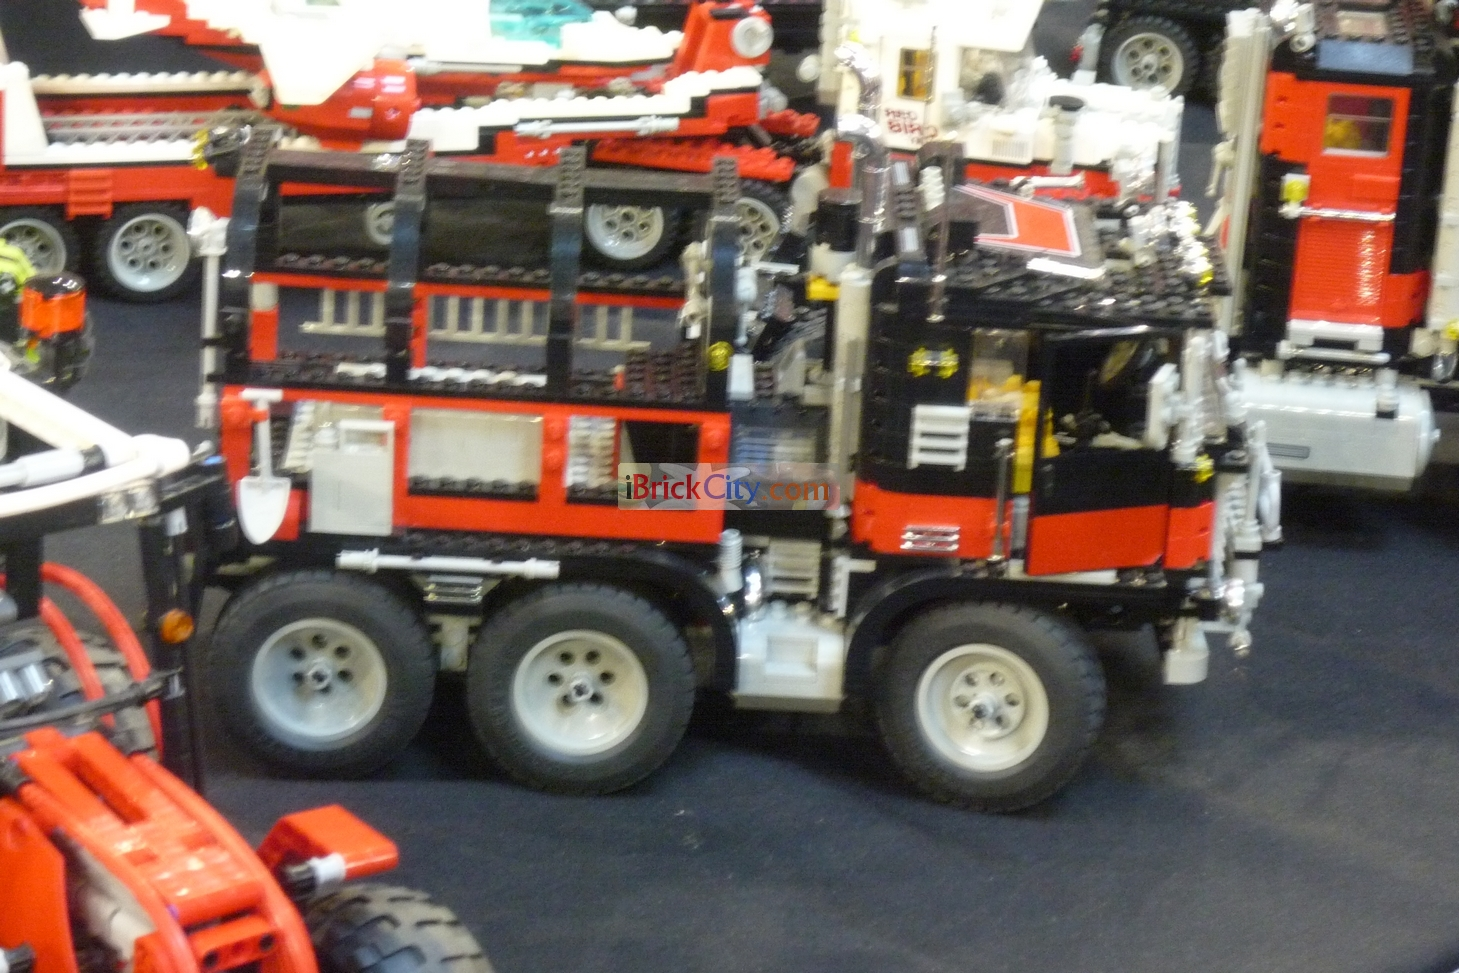 TechnicBRICKs: First quality images for 2H2012 LEGO Technic sets